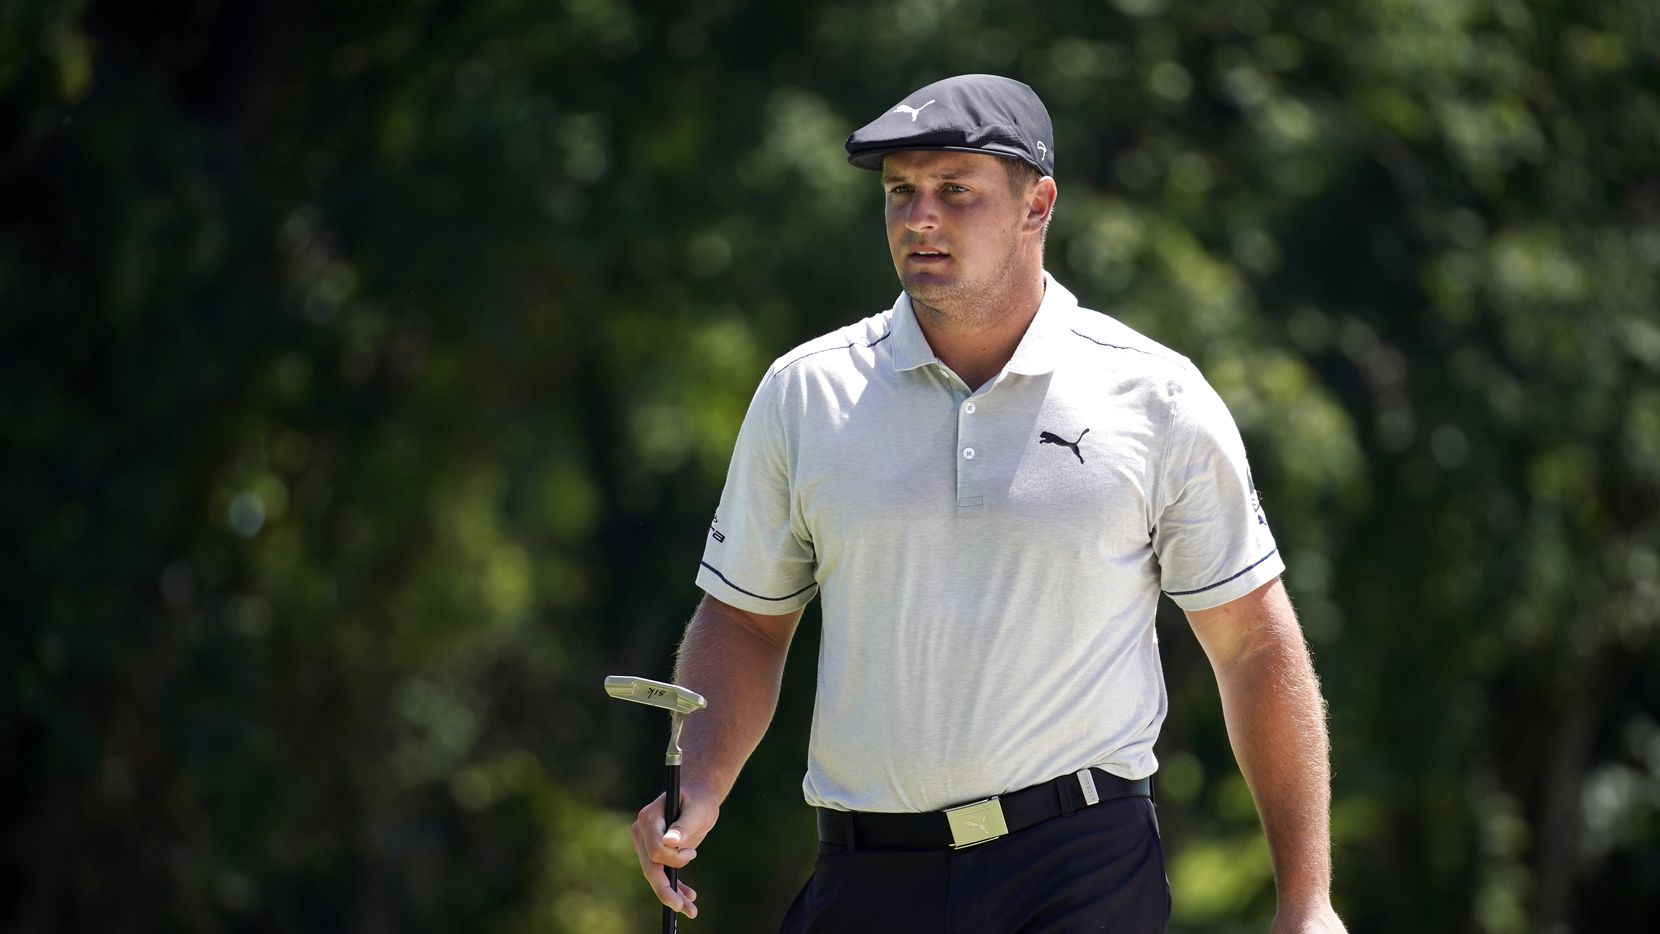 PGA Tour golfer Bryson DeChambeau finished  the third round tied for 9th with a 10-under in the Charles Schwab Challenge at the Colonial Country Club in Fort Worth, Saturday, June 13, 2020.